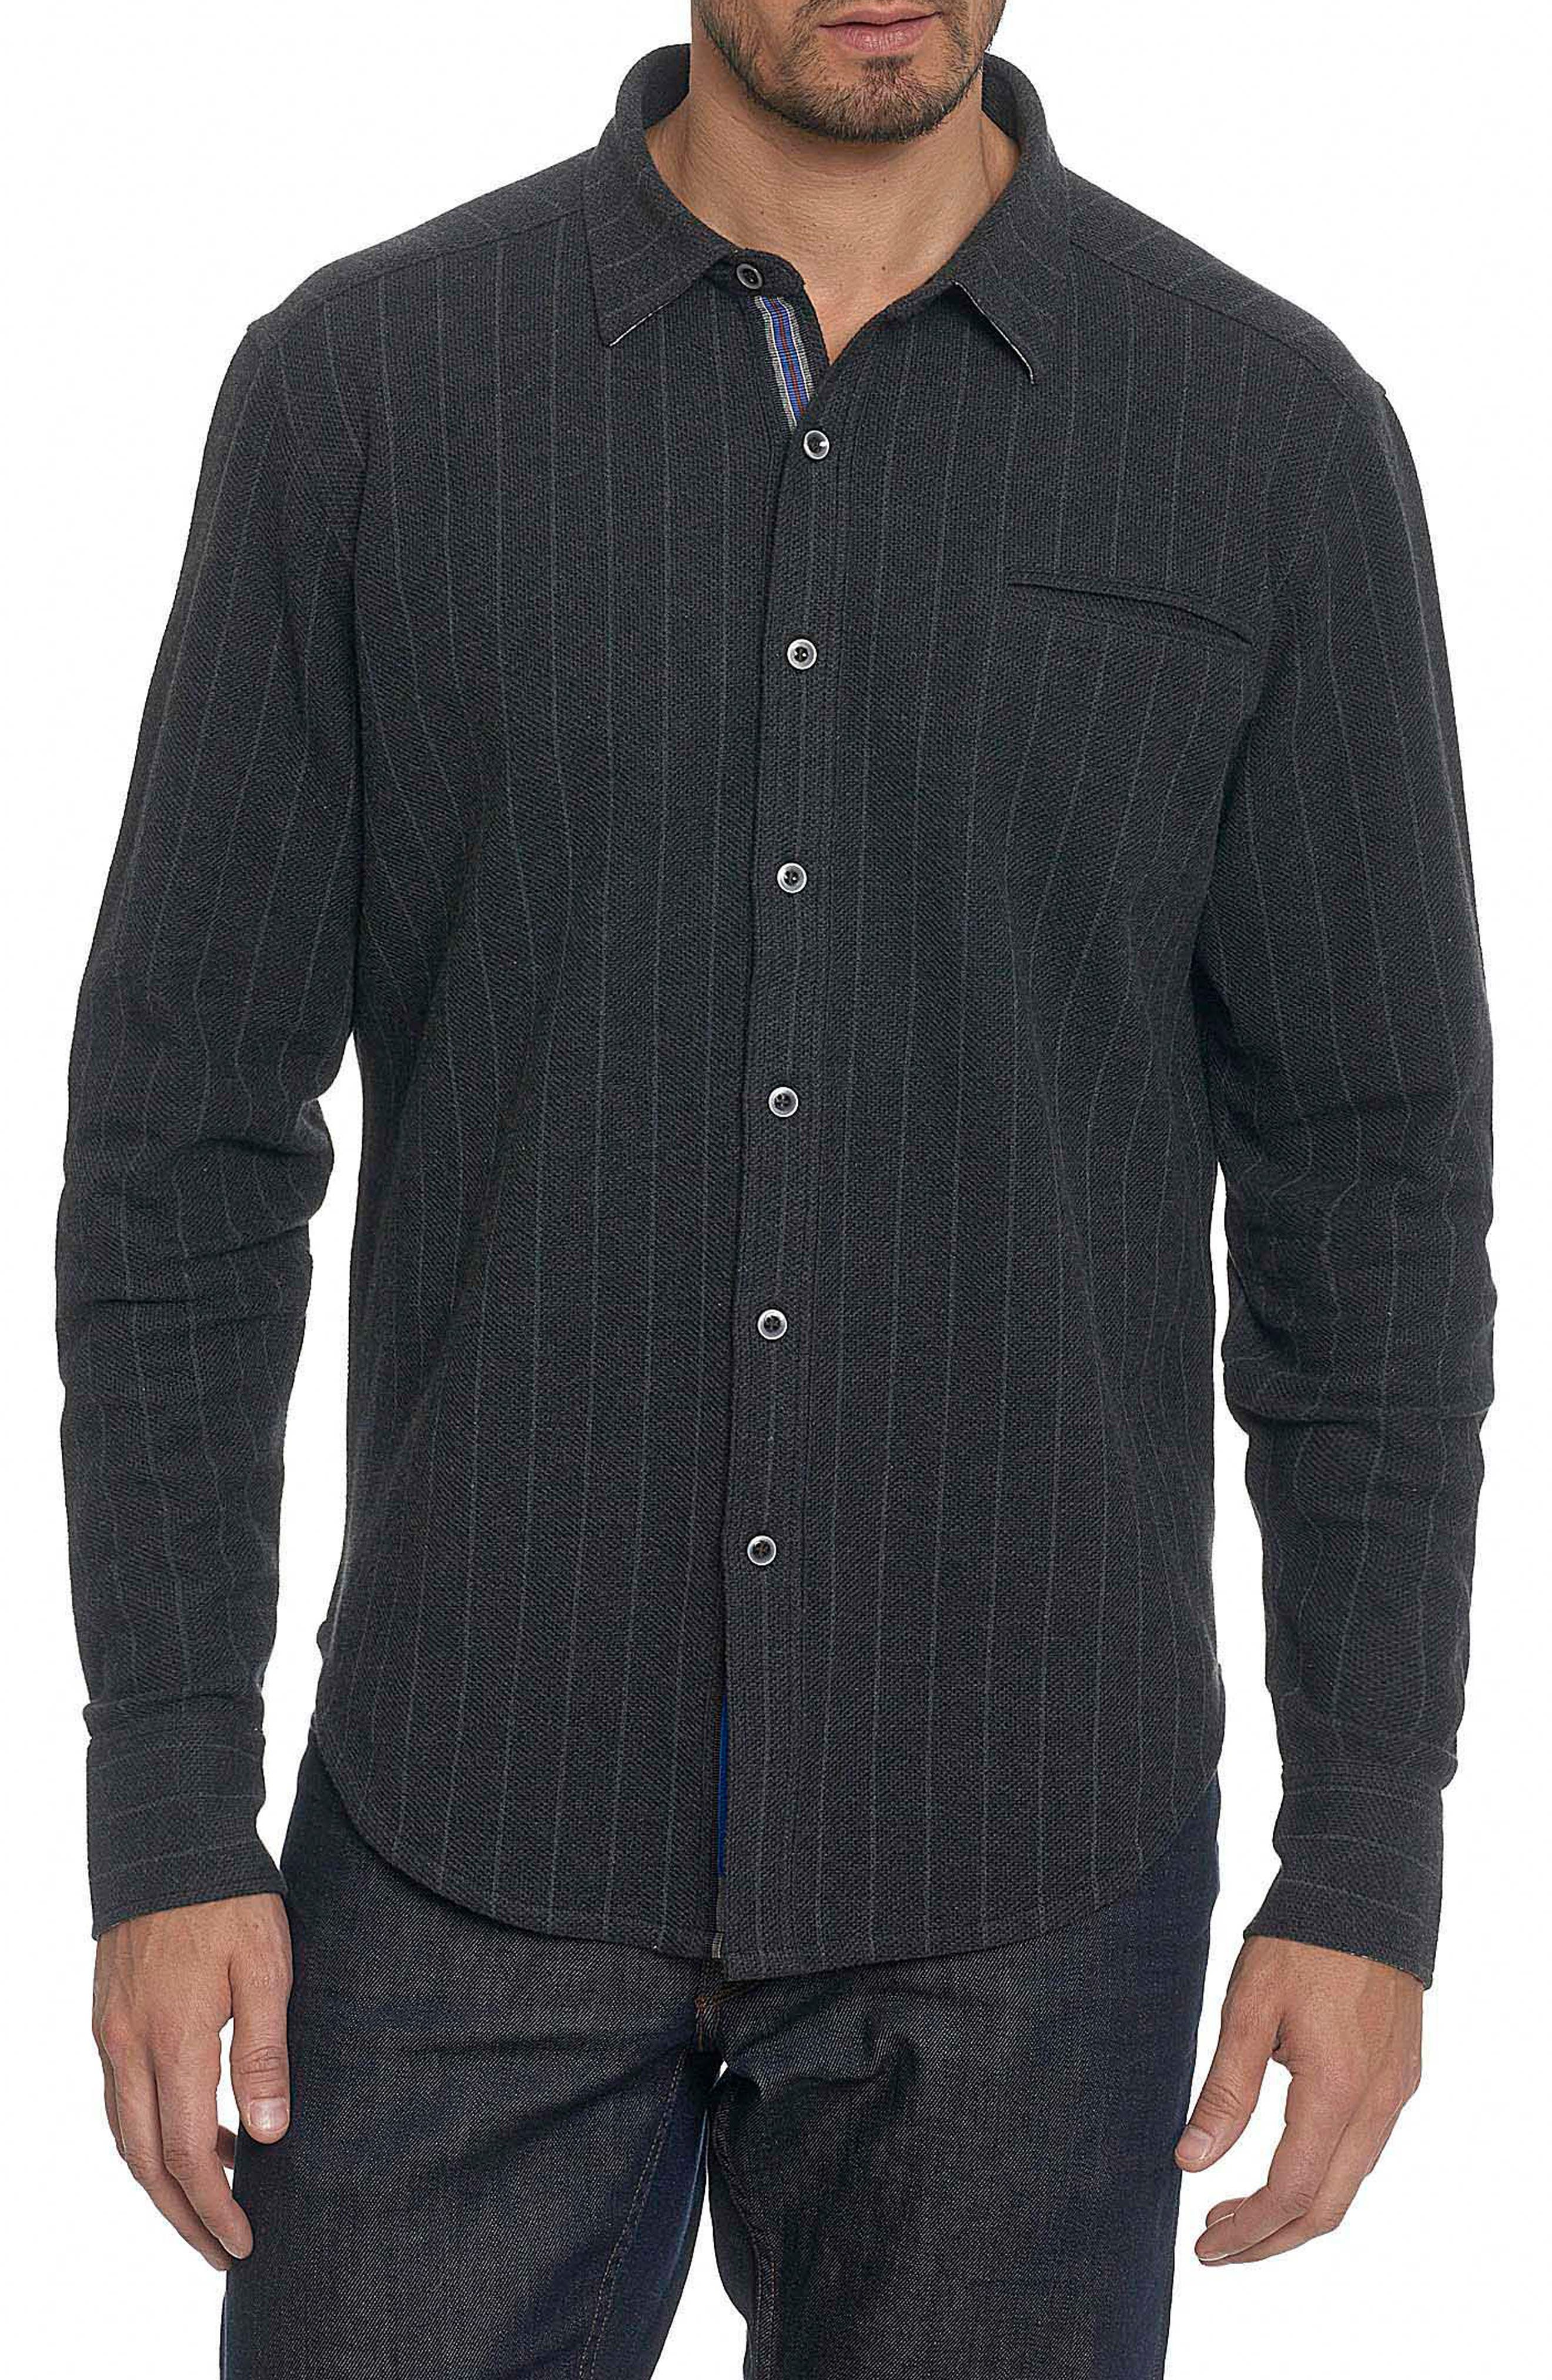 Amboy Classic Fit Shirt Jacket,                         Main,                         color, Heather Charcoal